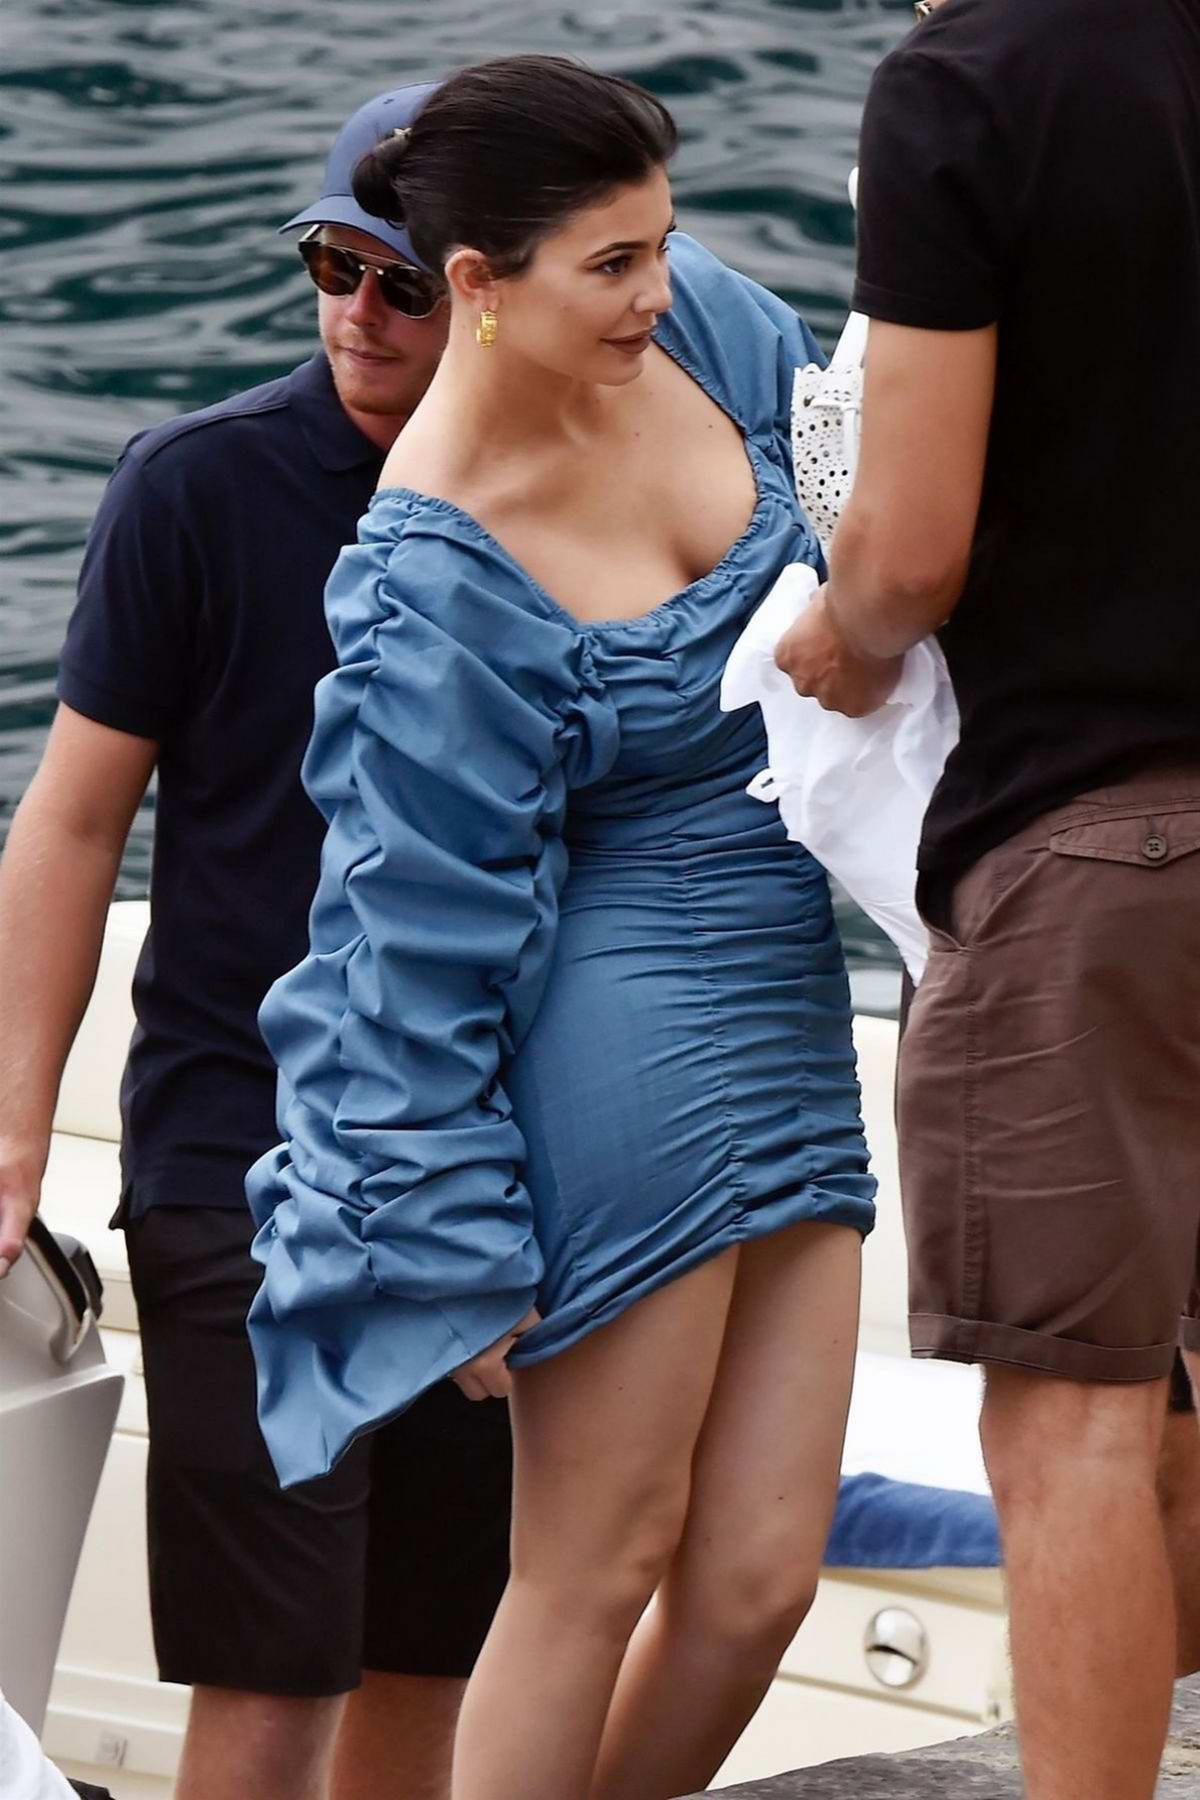 Kylie Jenner looks striking in a blue dress while enjoying a day out with friends in Italy